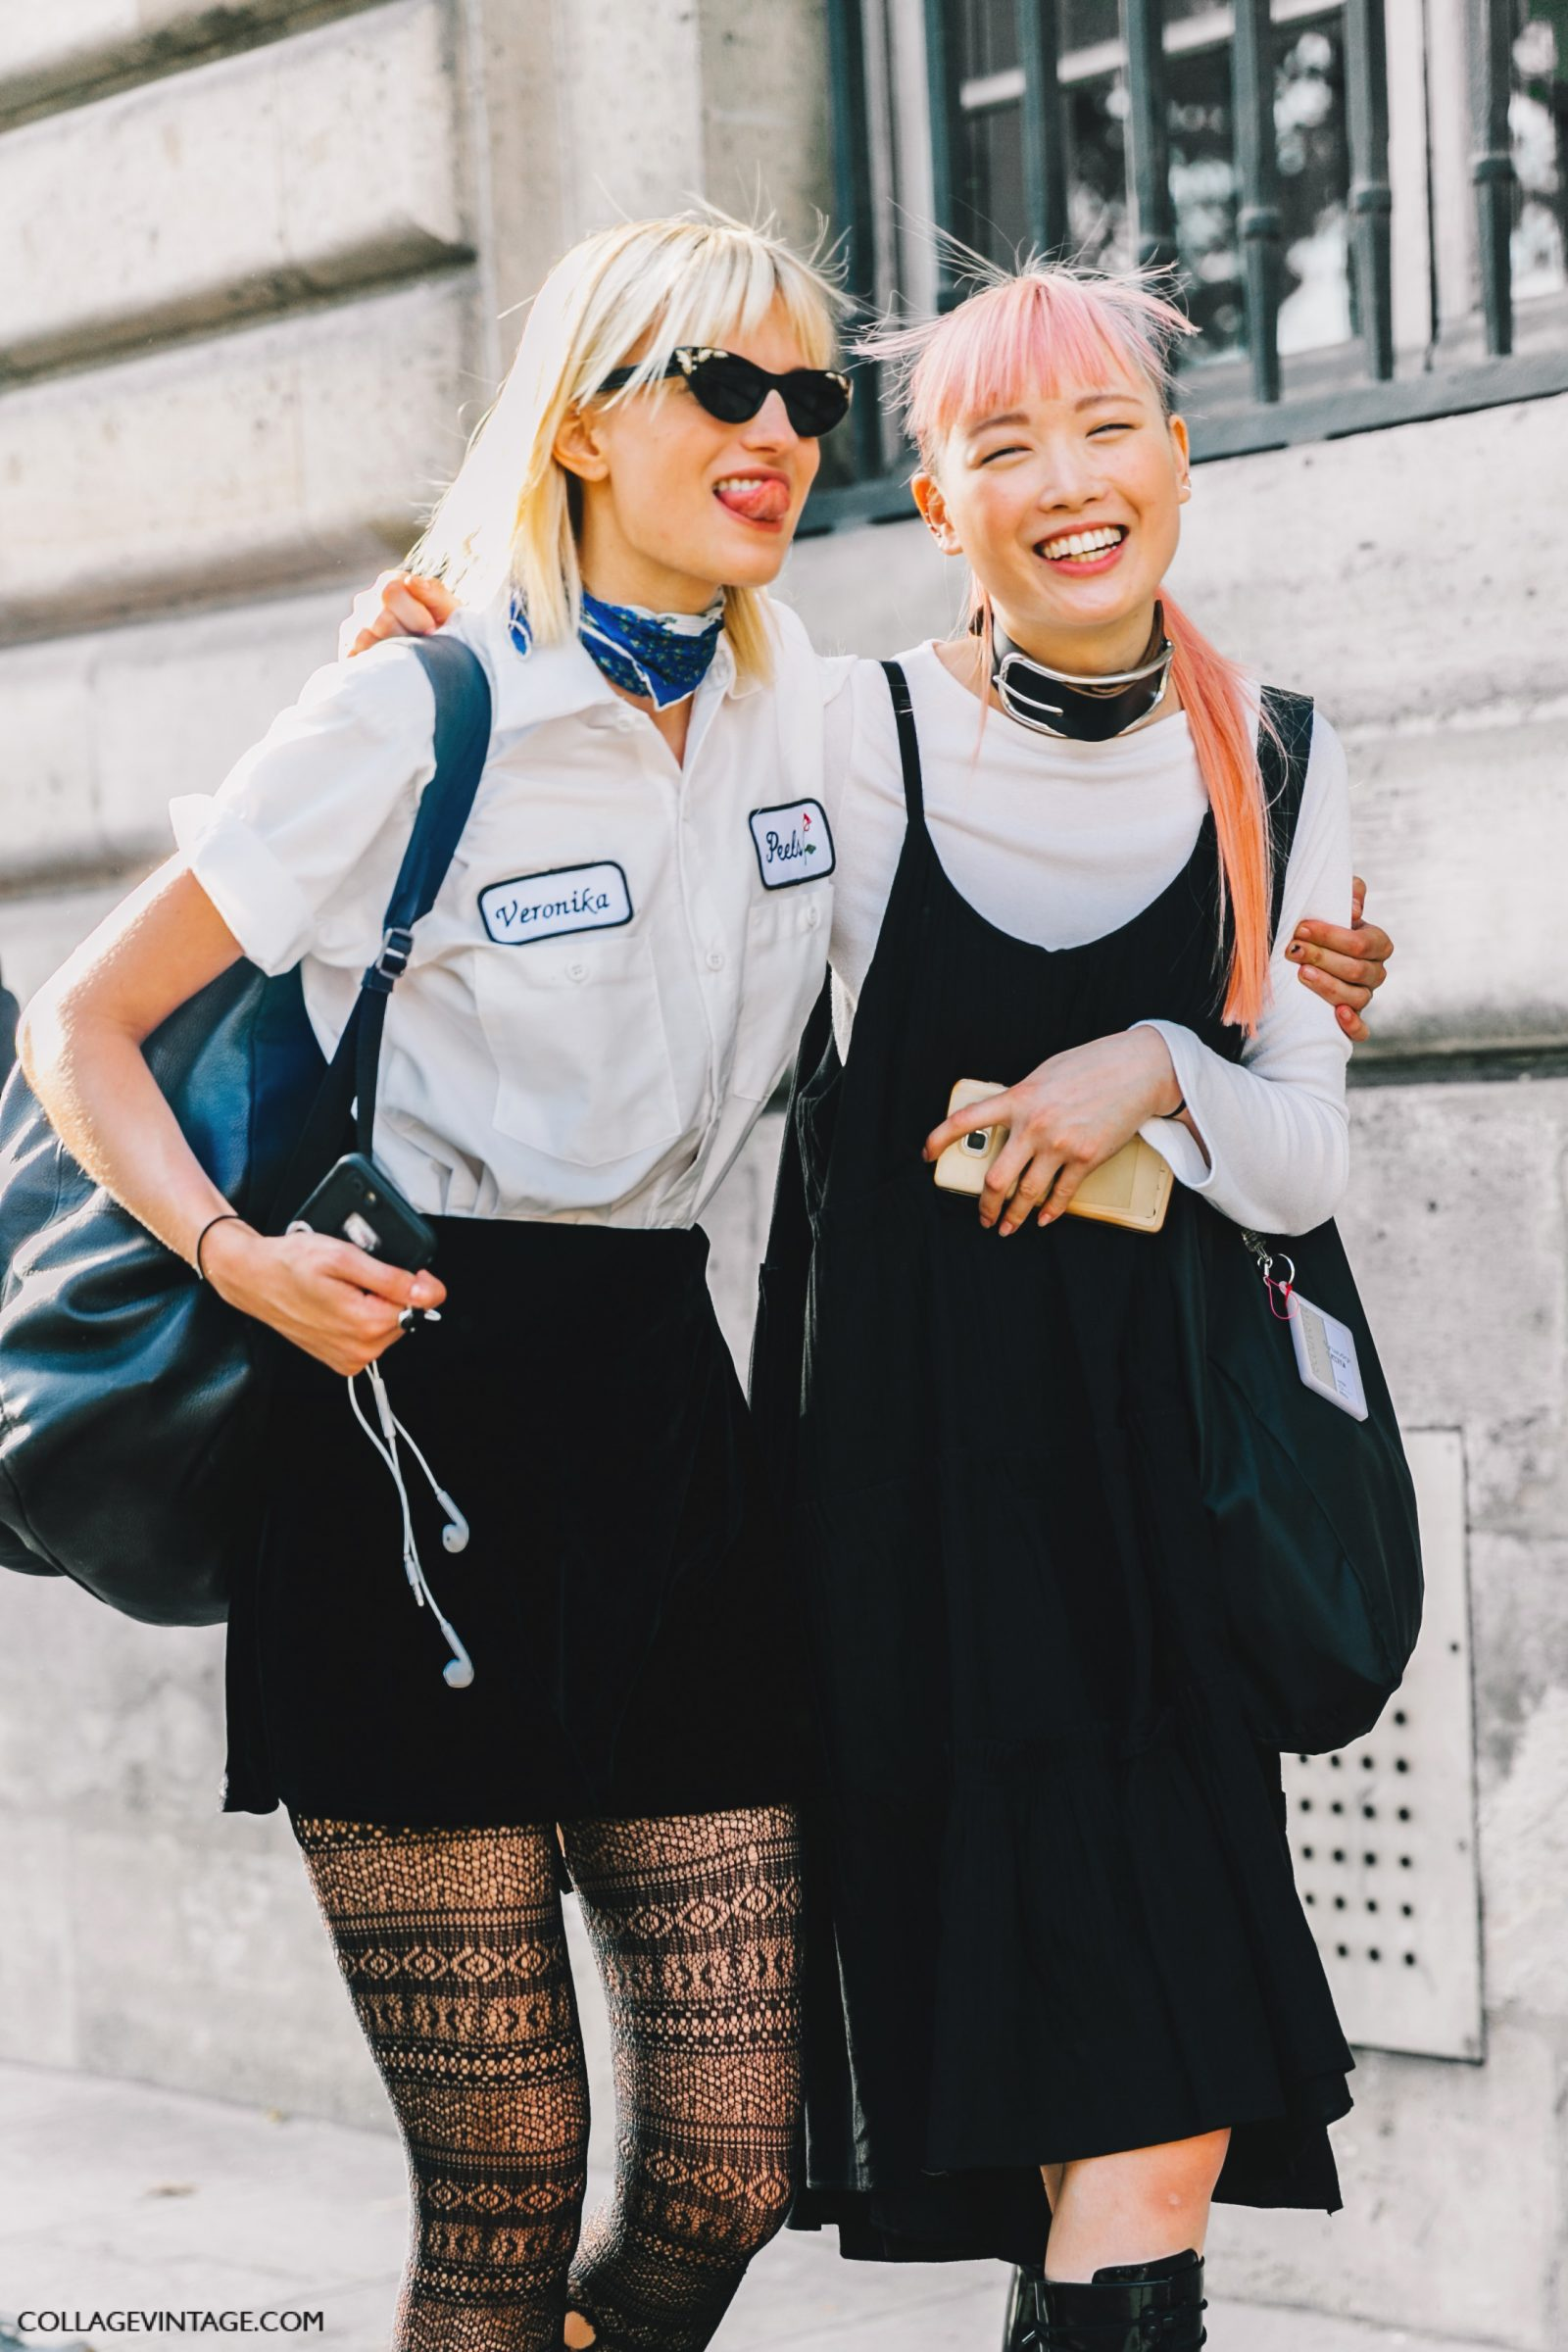 pfw-paris_fashion_week_ss17-street_style-outfits-collage_vintage-rochas-courreges-dries_van_noten-lanvin-guy_laroche-41